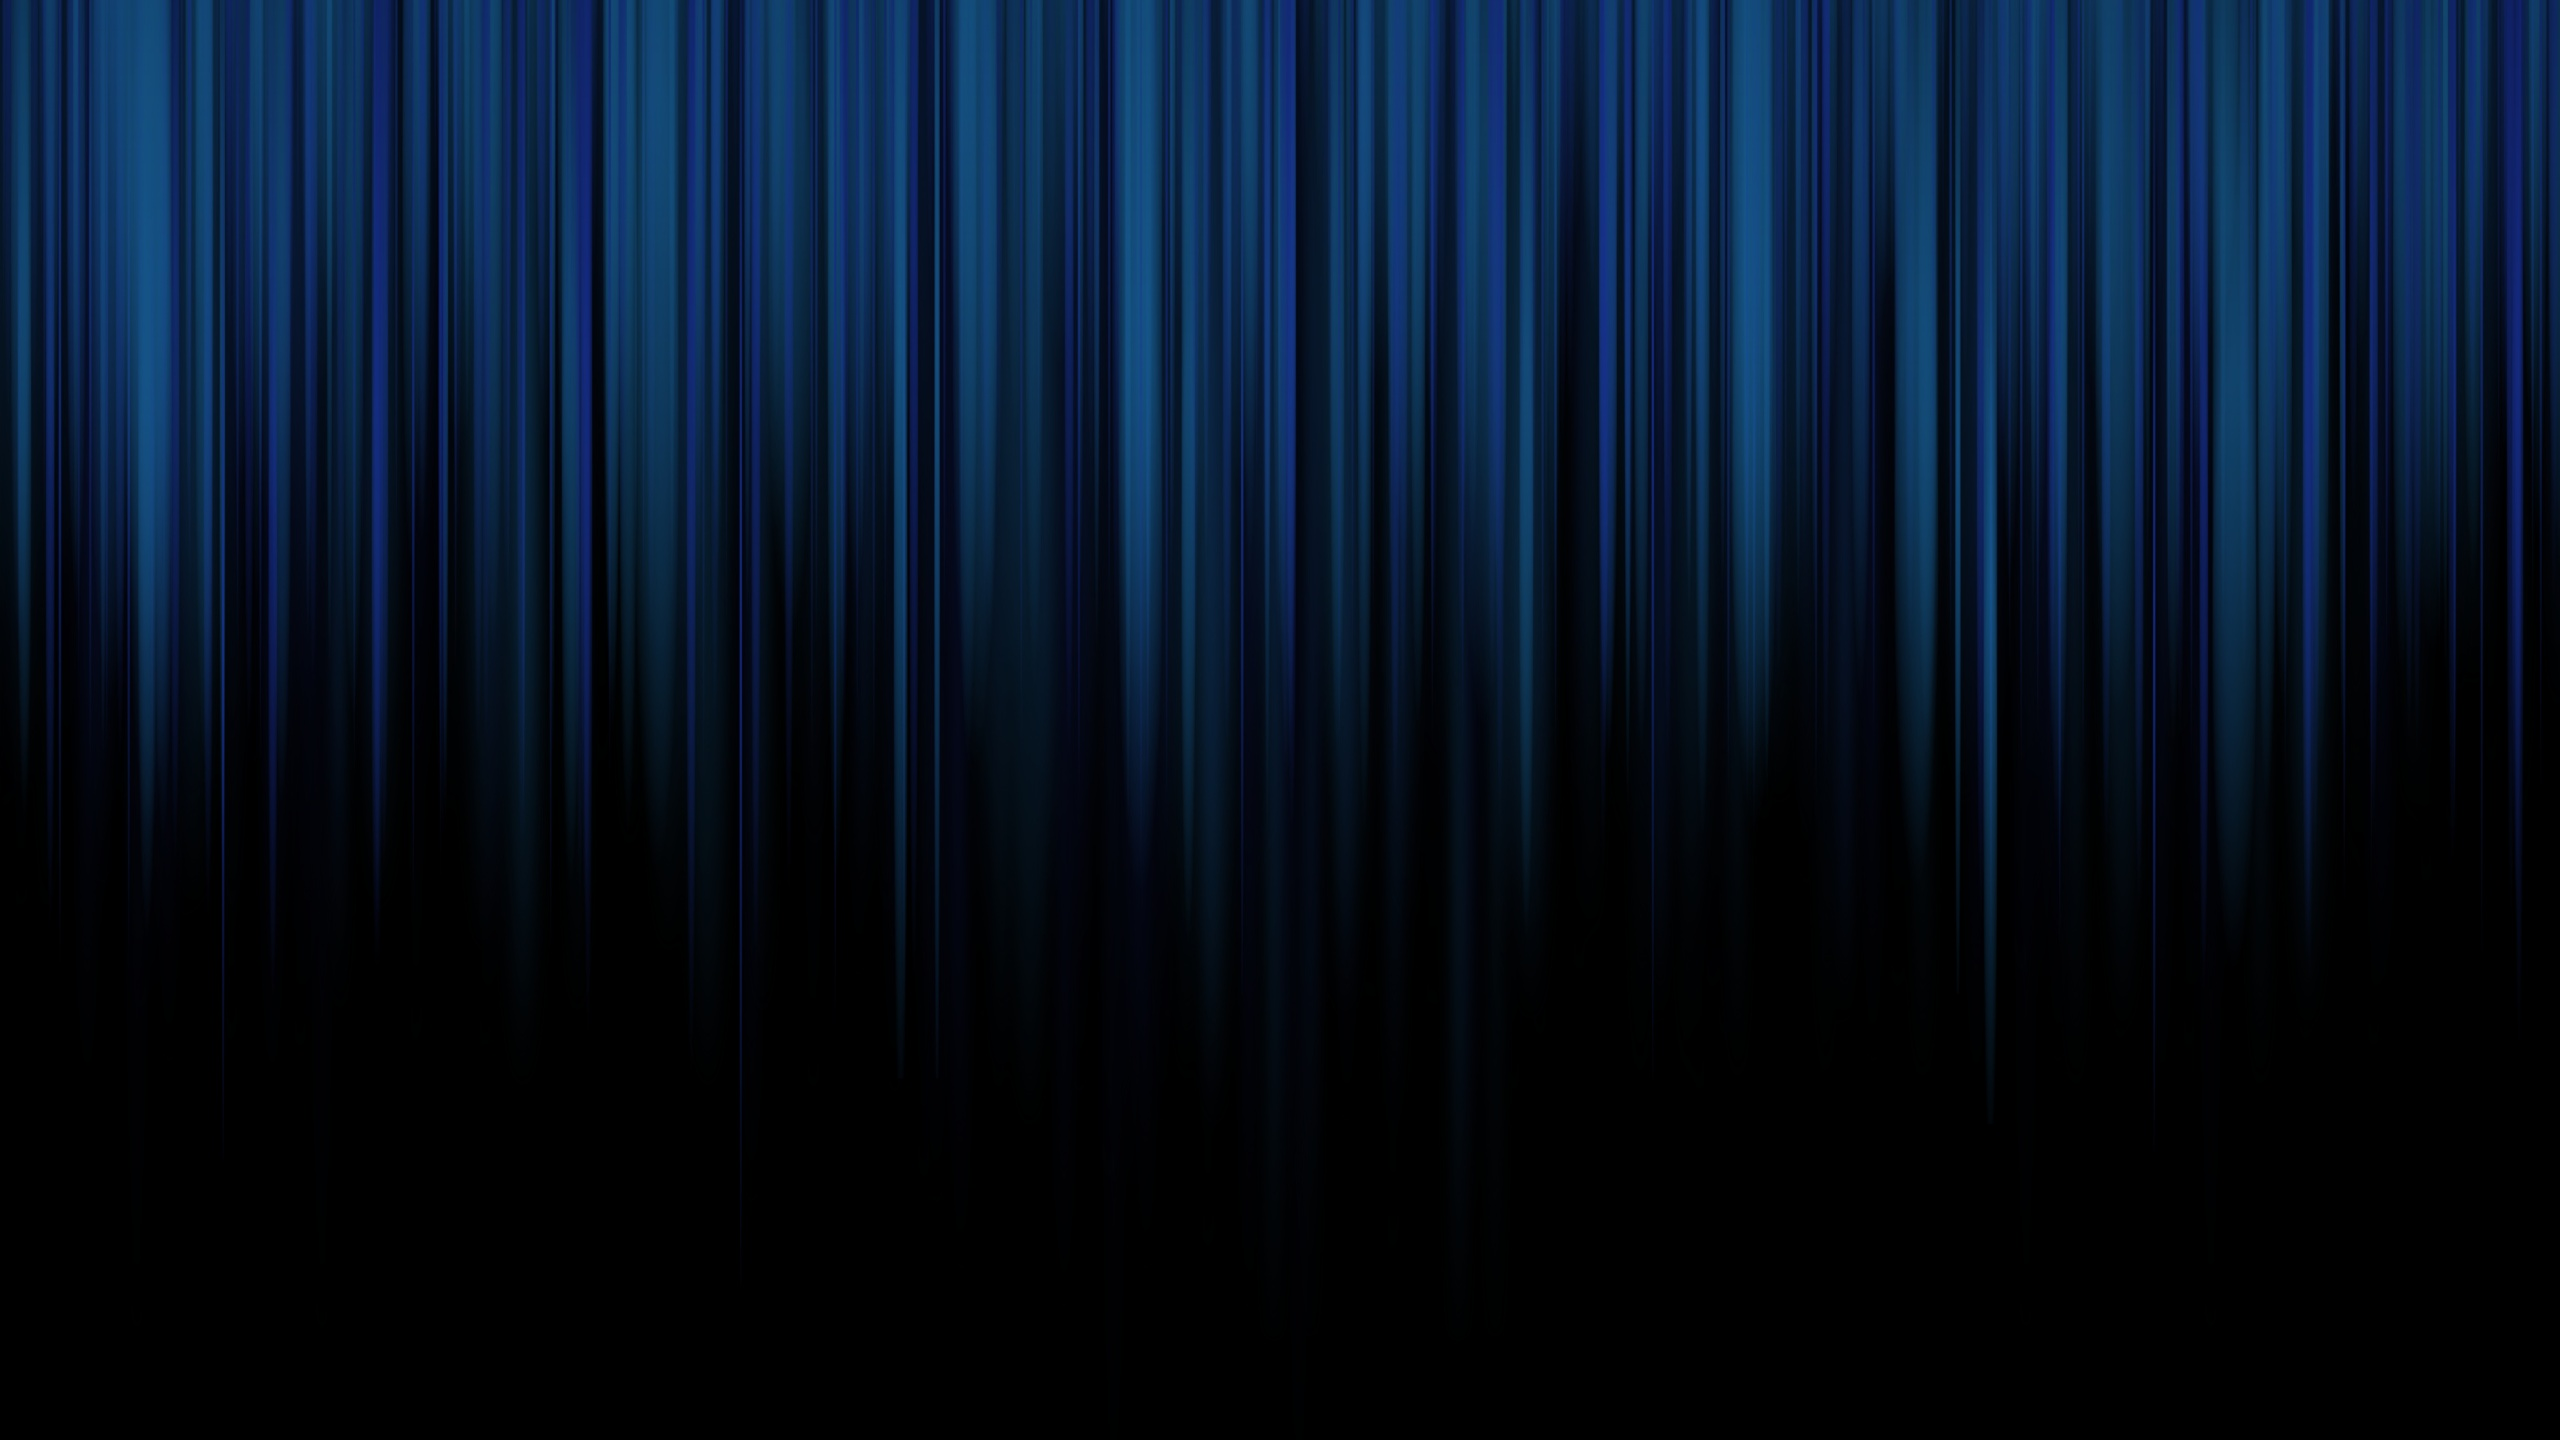 2560x1440 Black and Blue Stripes desktop PC and Mac wallpaper 2560x1440